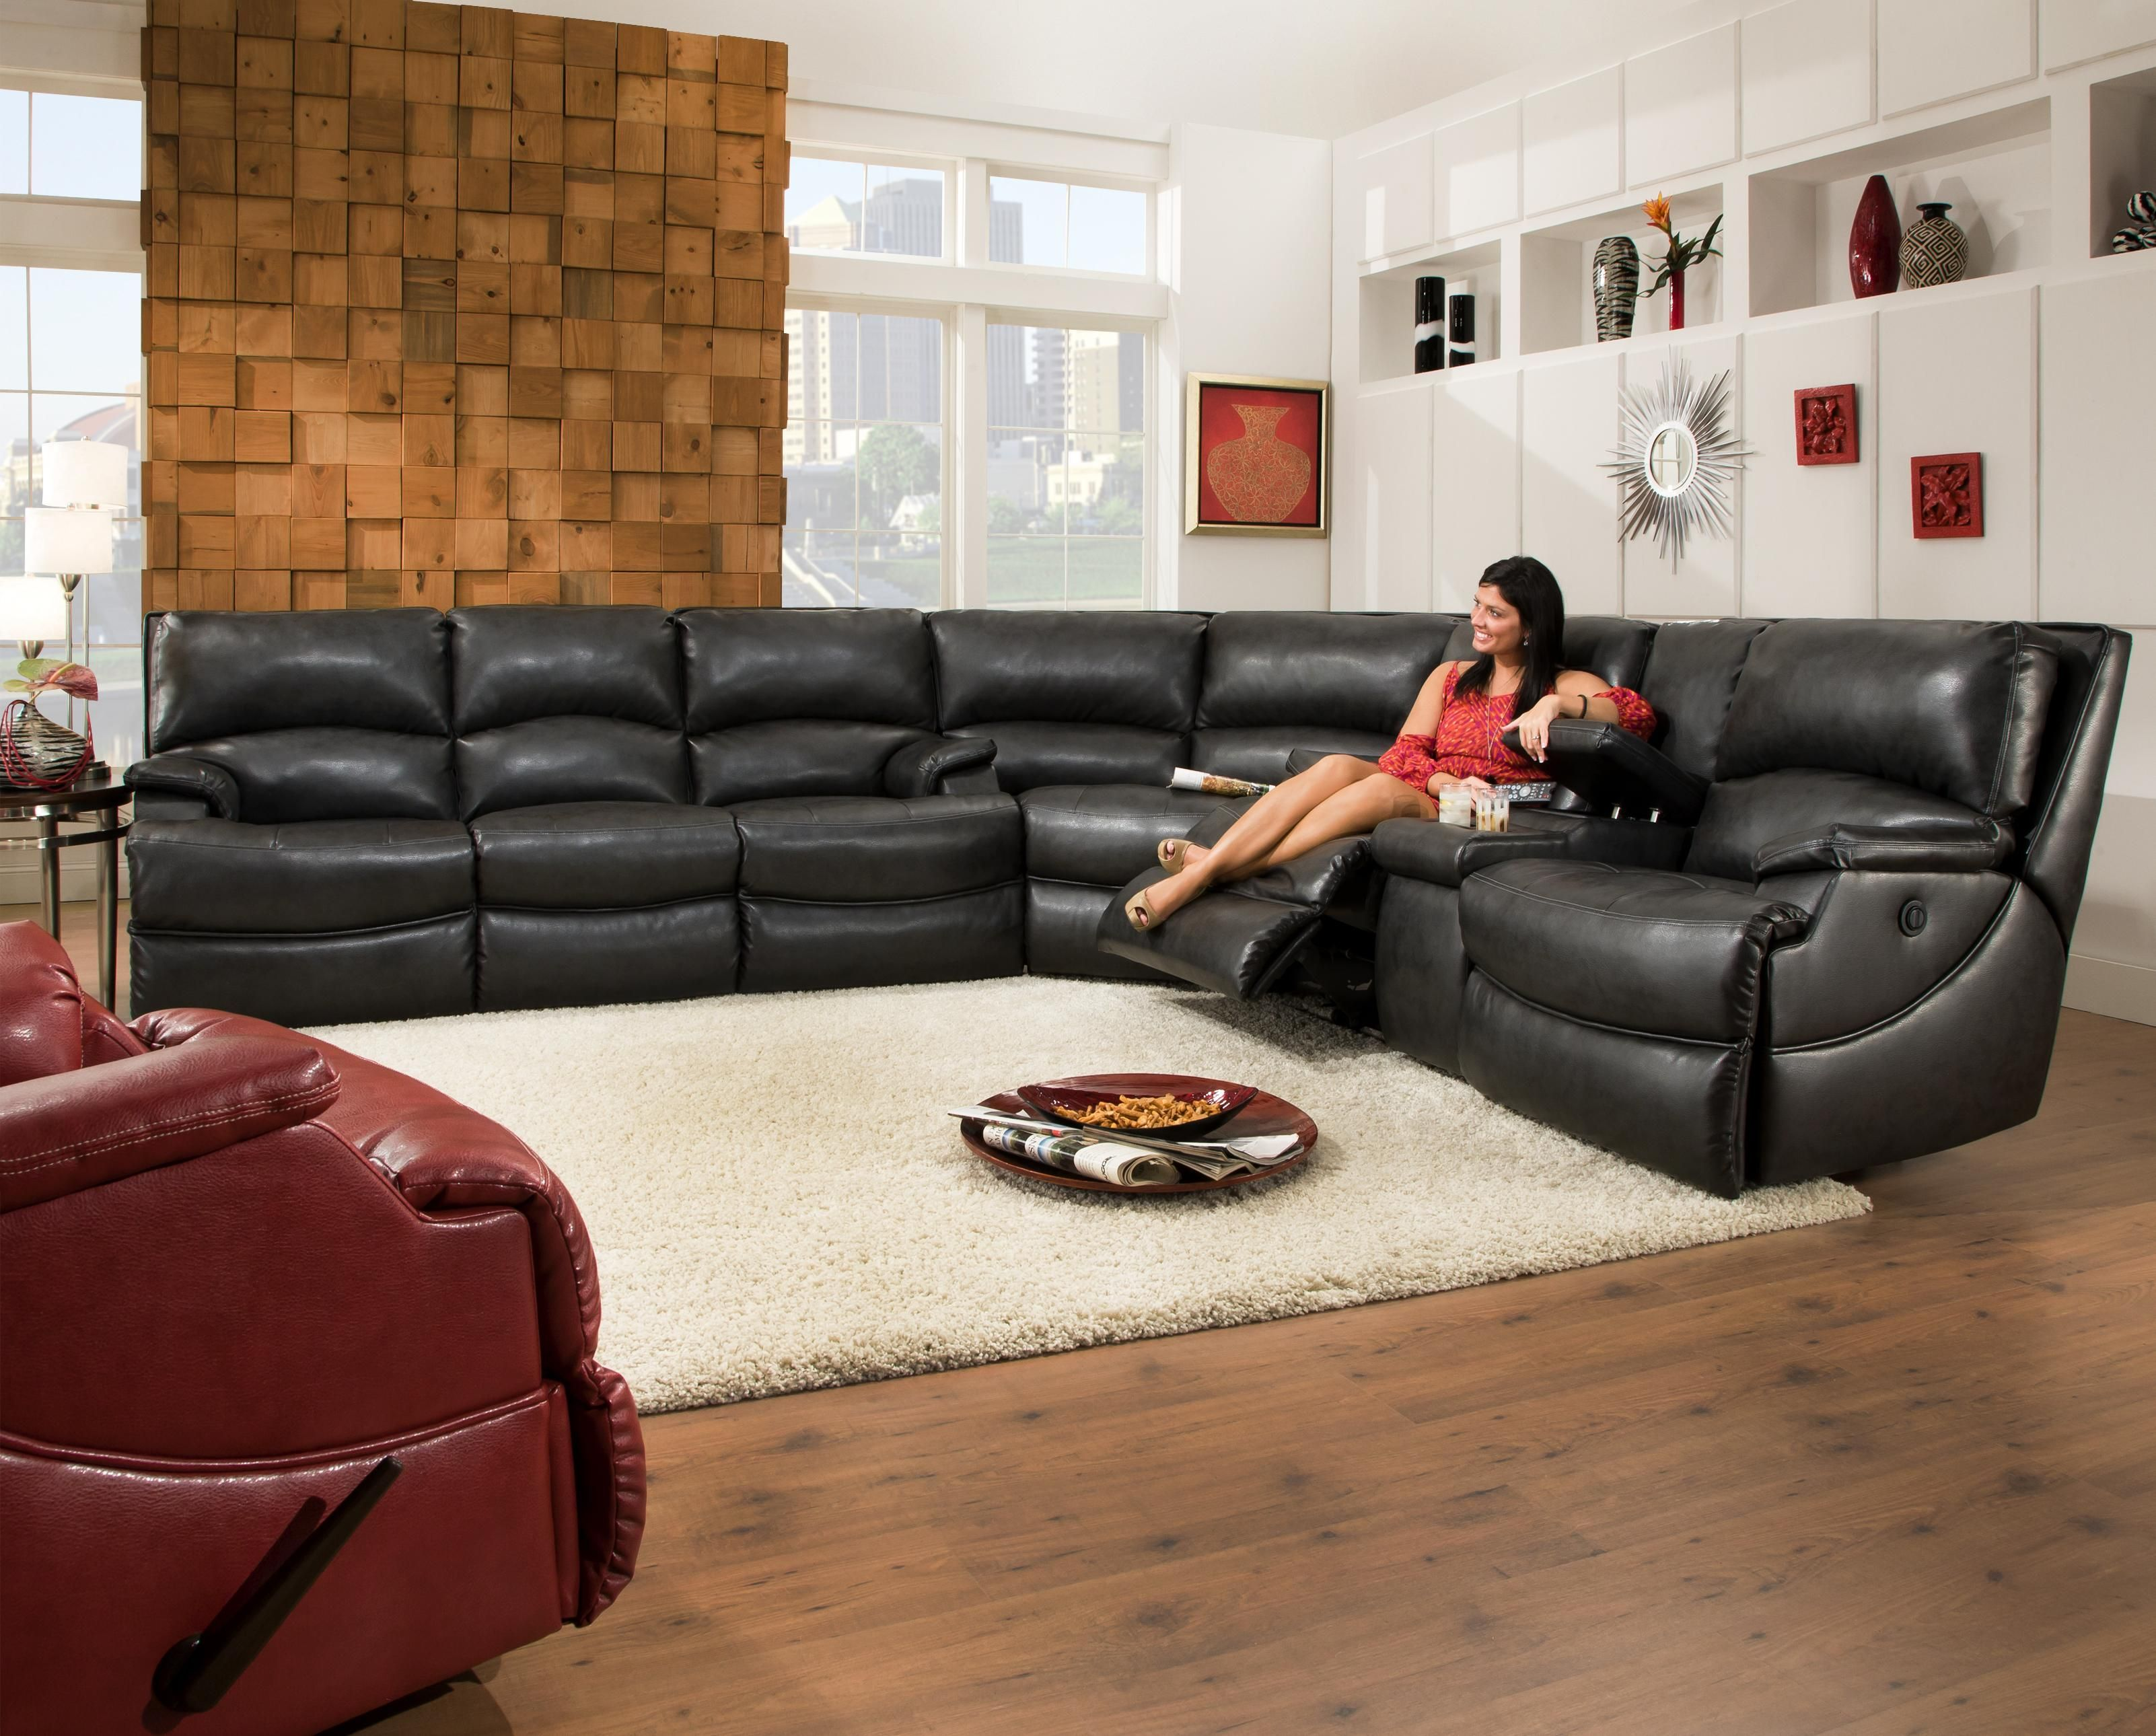 Shazam Six Seat Reclining Sectional Sofa With CupHolders And - Leather sofas tampa